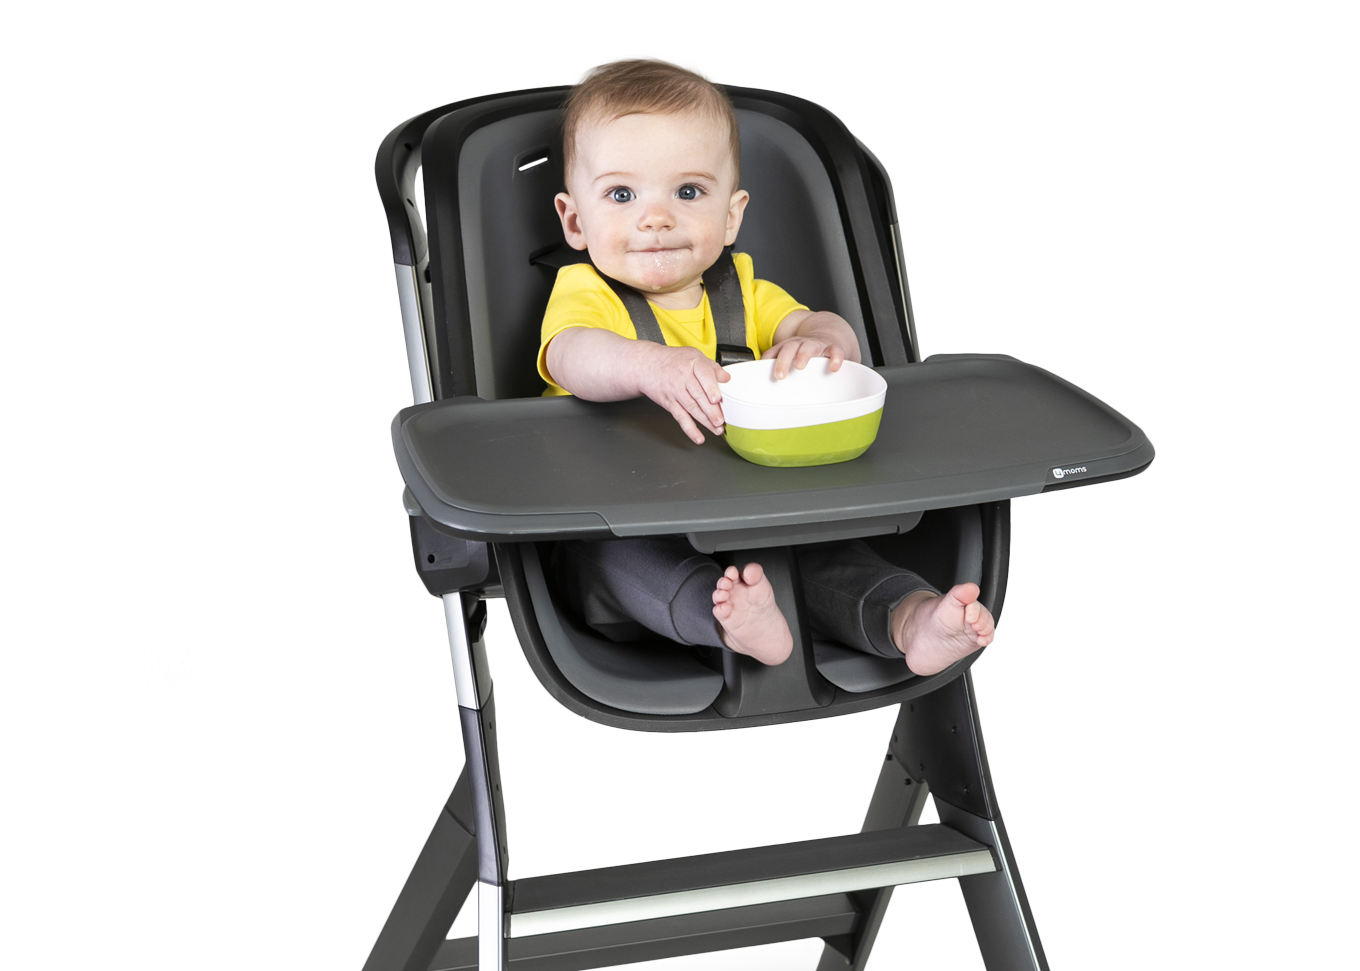 baby in high chair with magnetic tray holding bowl in place